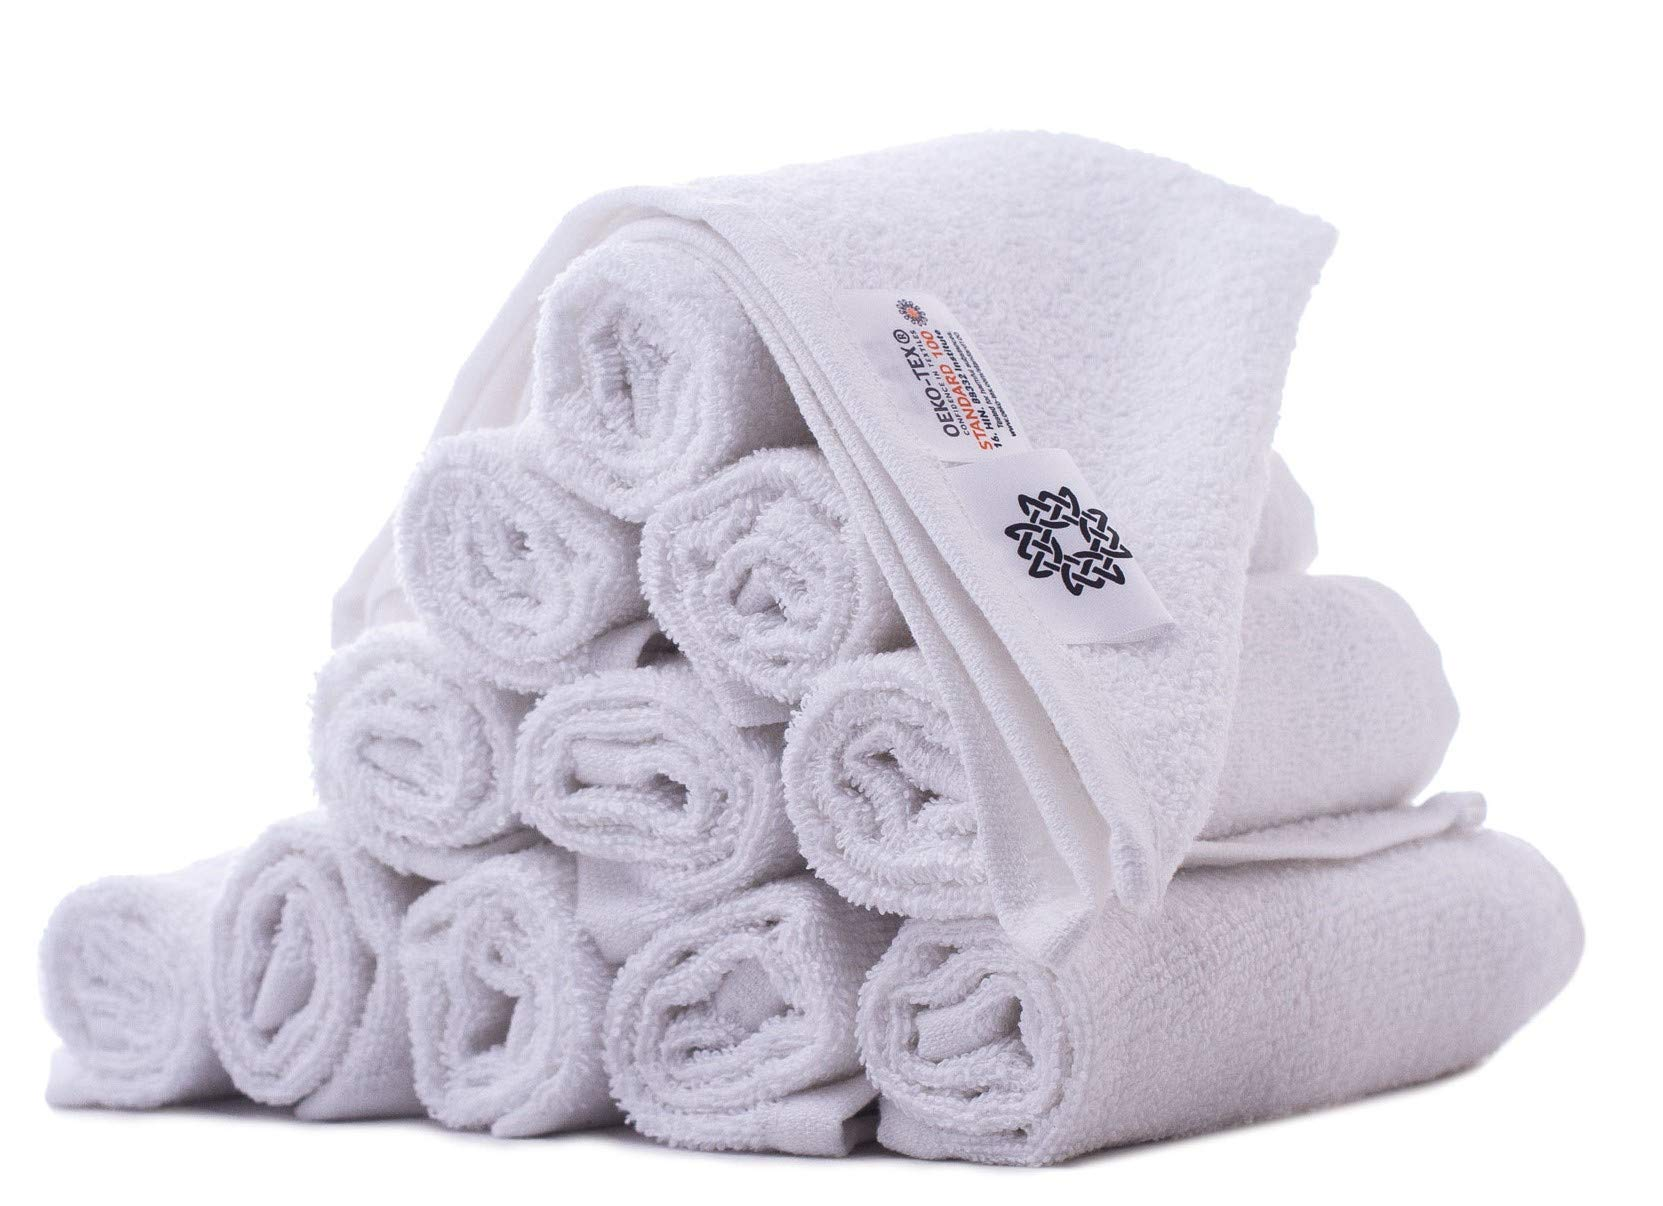 White Spindle 100% Cotton Face Towel Washcloth Set (12 Piece Set) Soft As Cloud, Absorbent, Thick, Spa Towel, Hotel Towel, Face Towel Set 13x13 inch